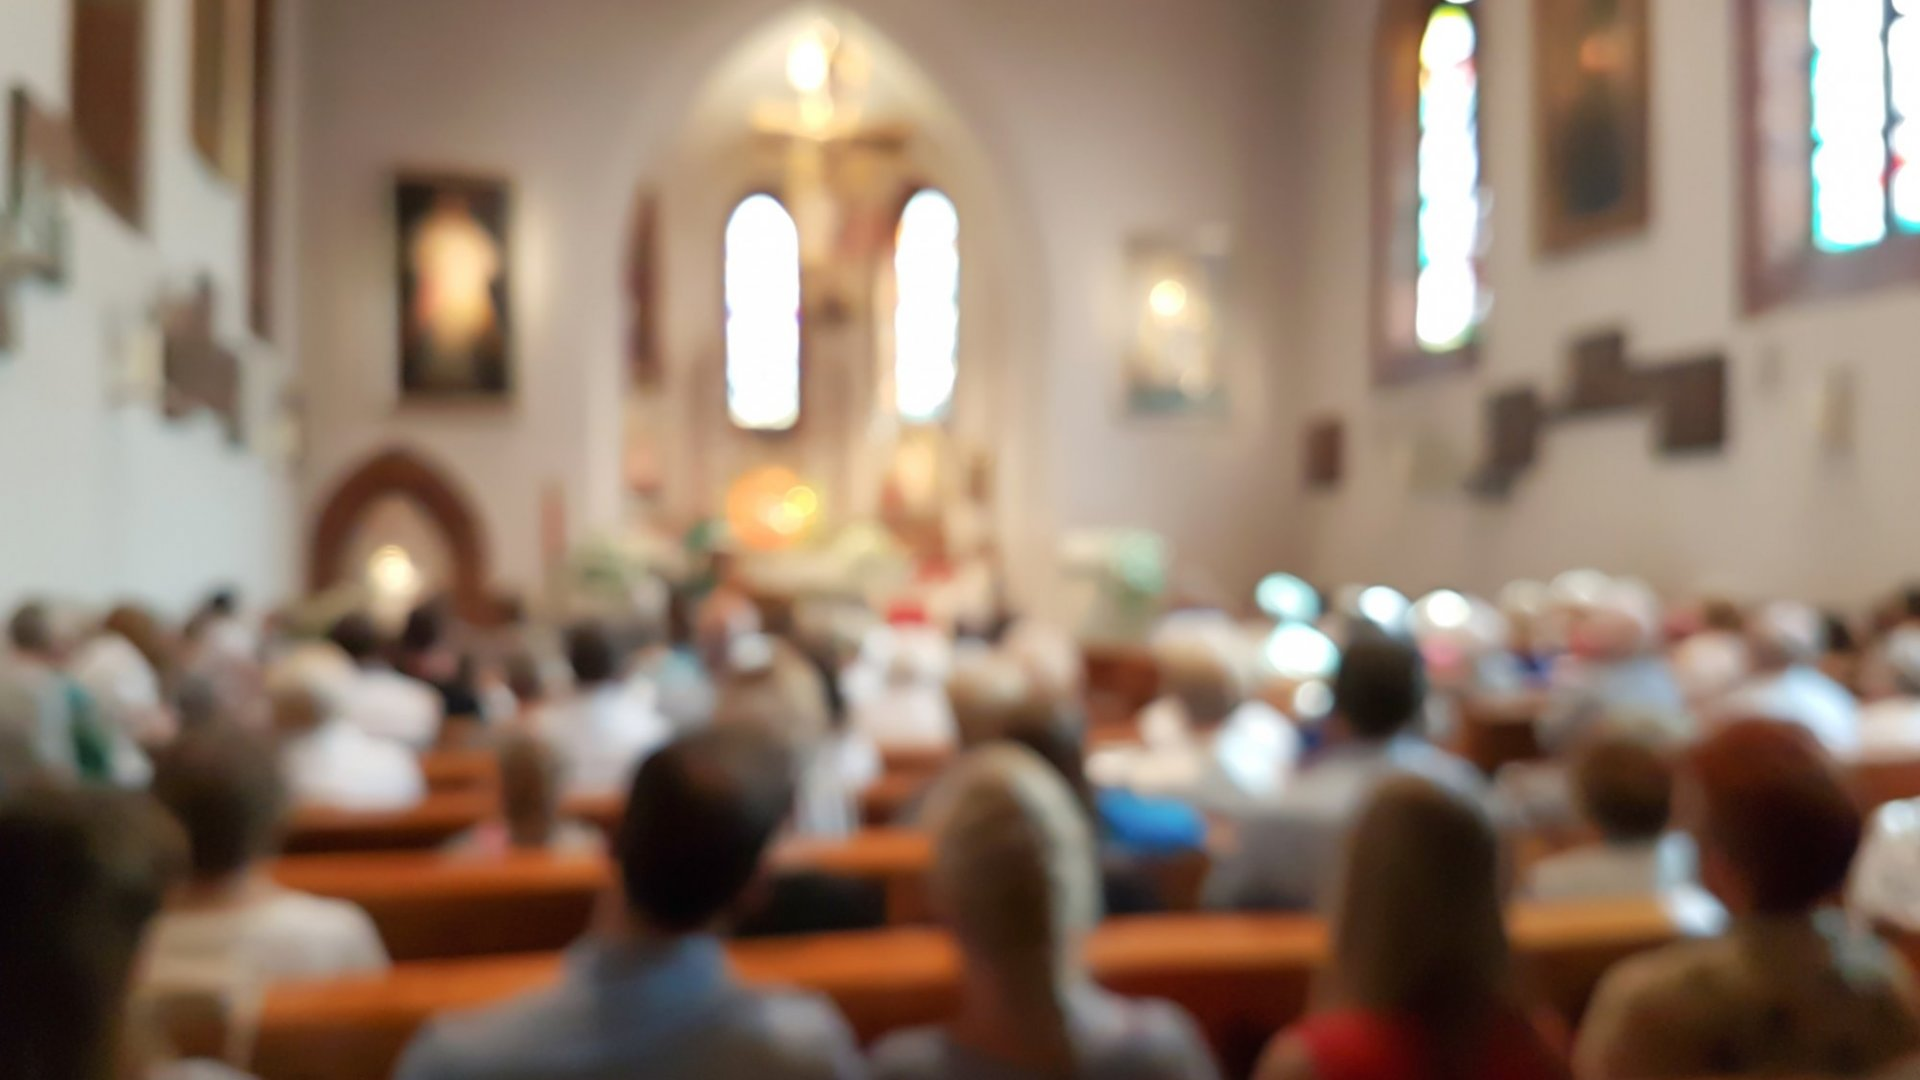 For This Church Security Business, Business Is Booming, Unfortunately